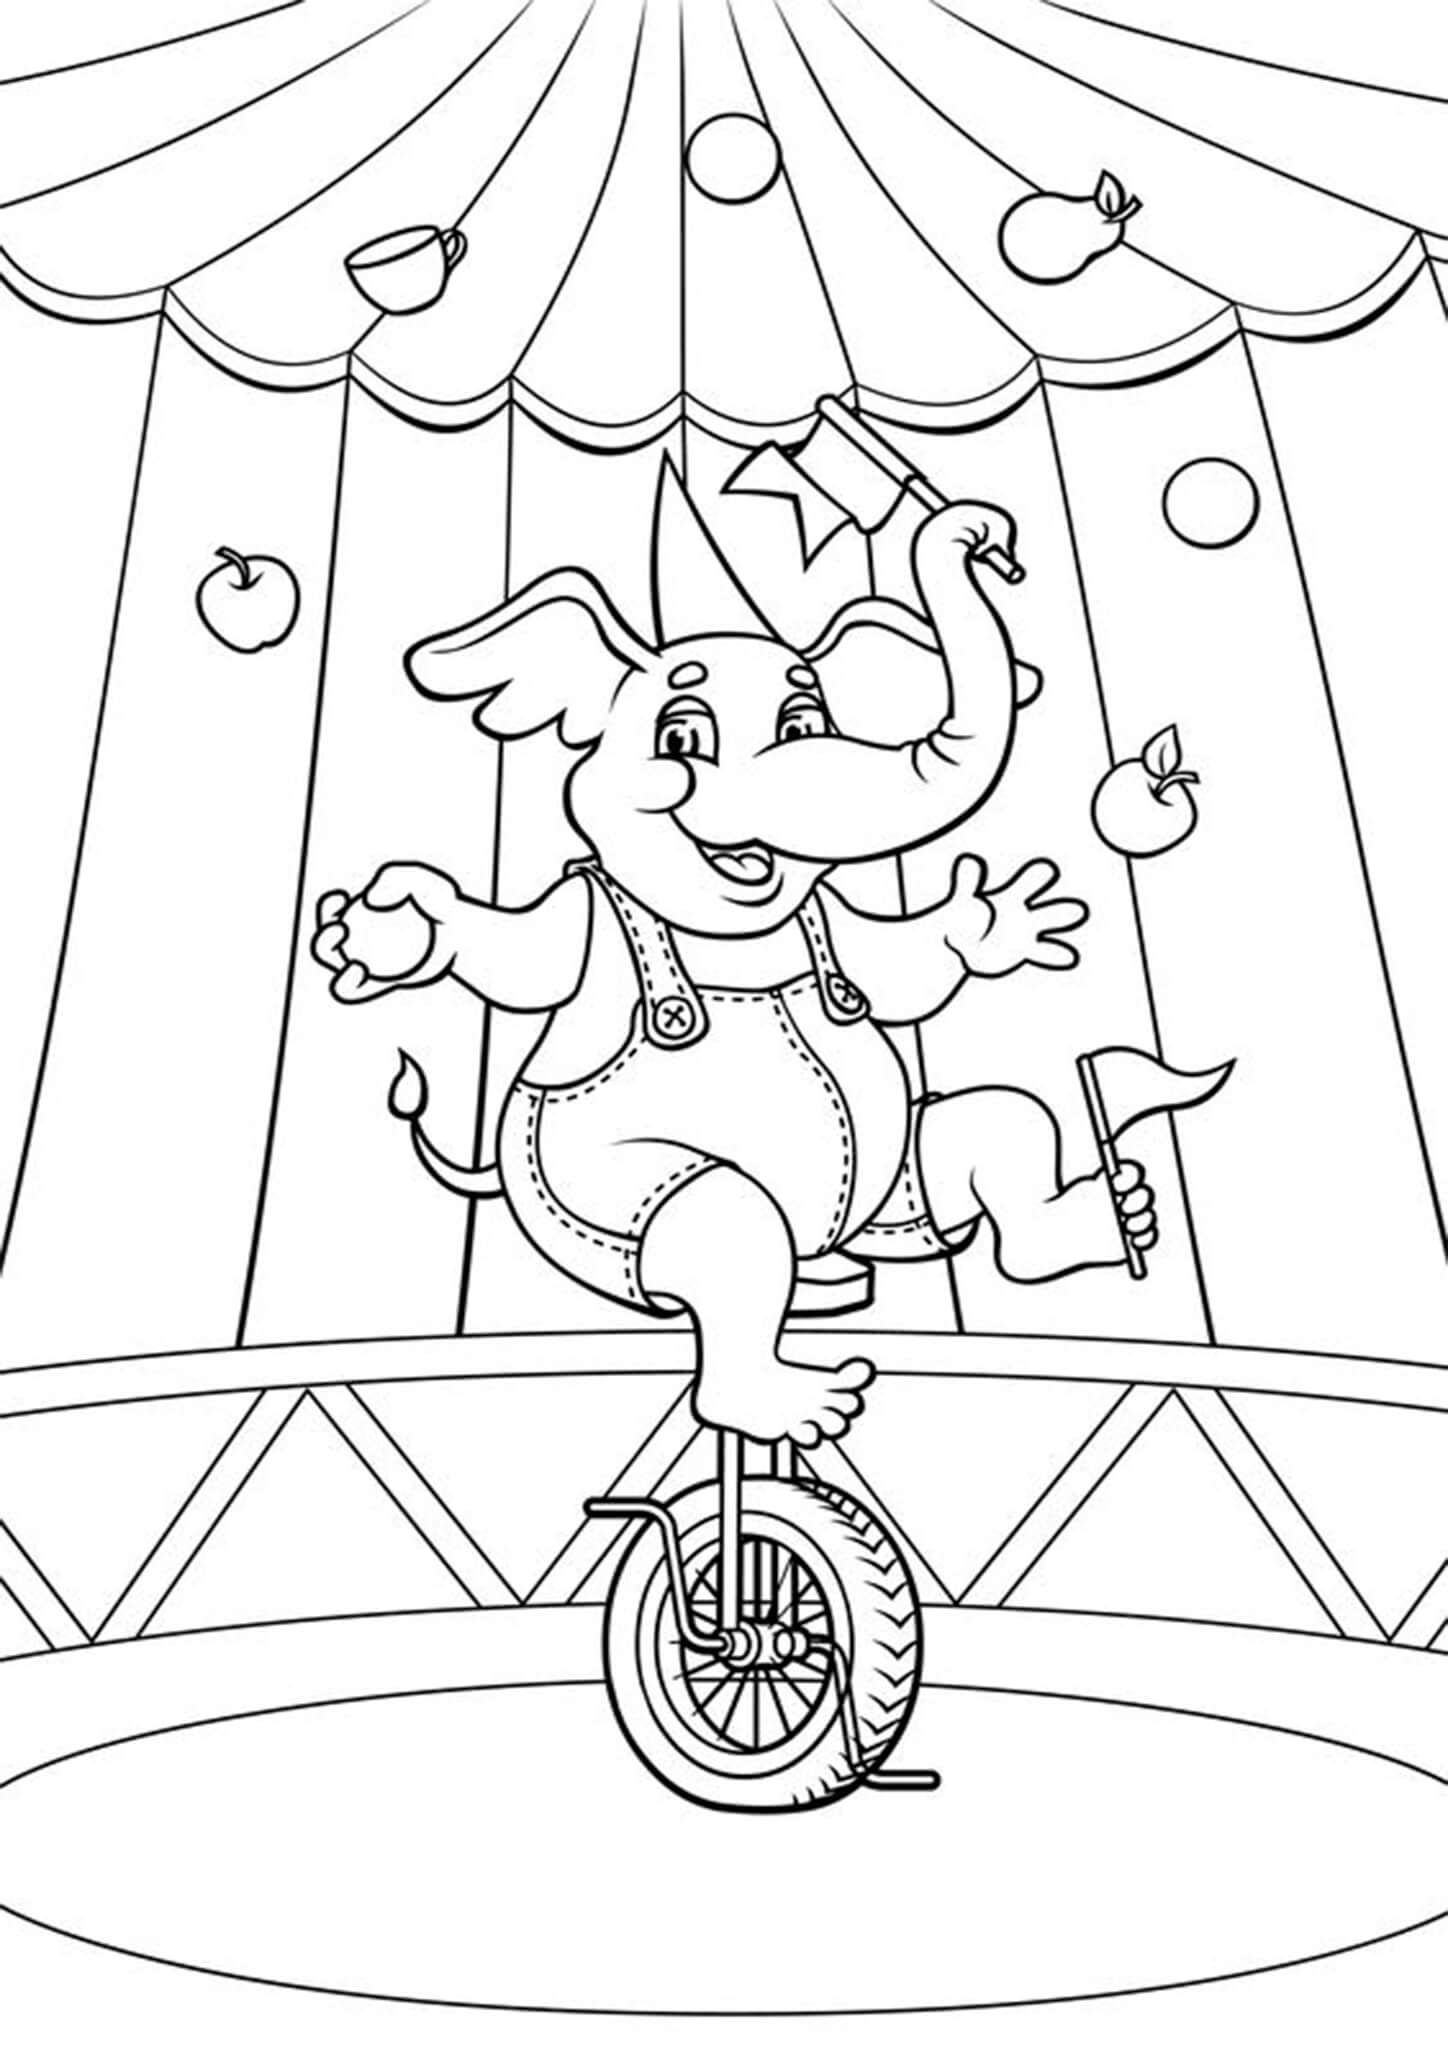 Free Easy To Print Circus Coloring Pages In 2021 Coloring Pages Elephant Coloring Page Cool Coloring Pages